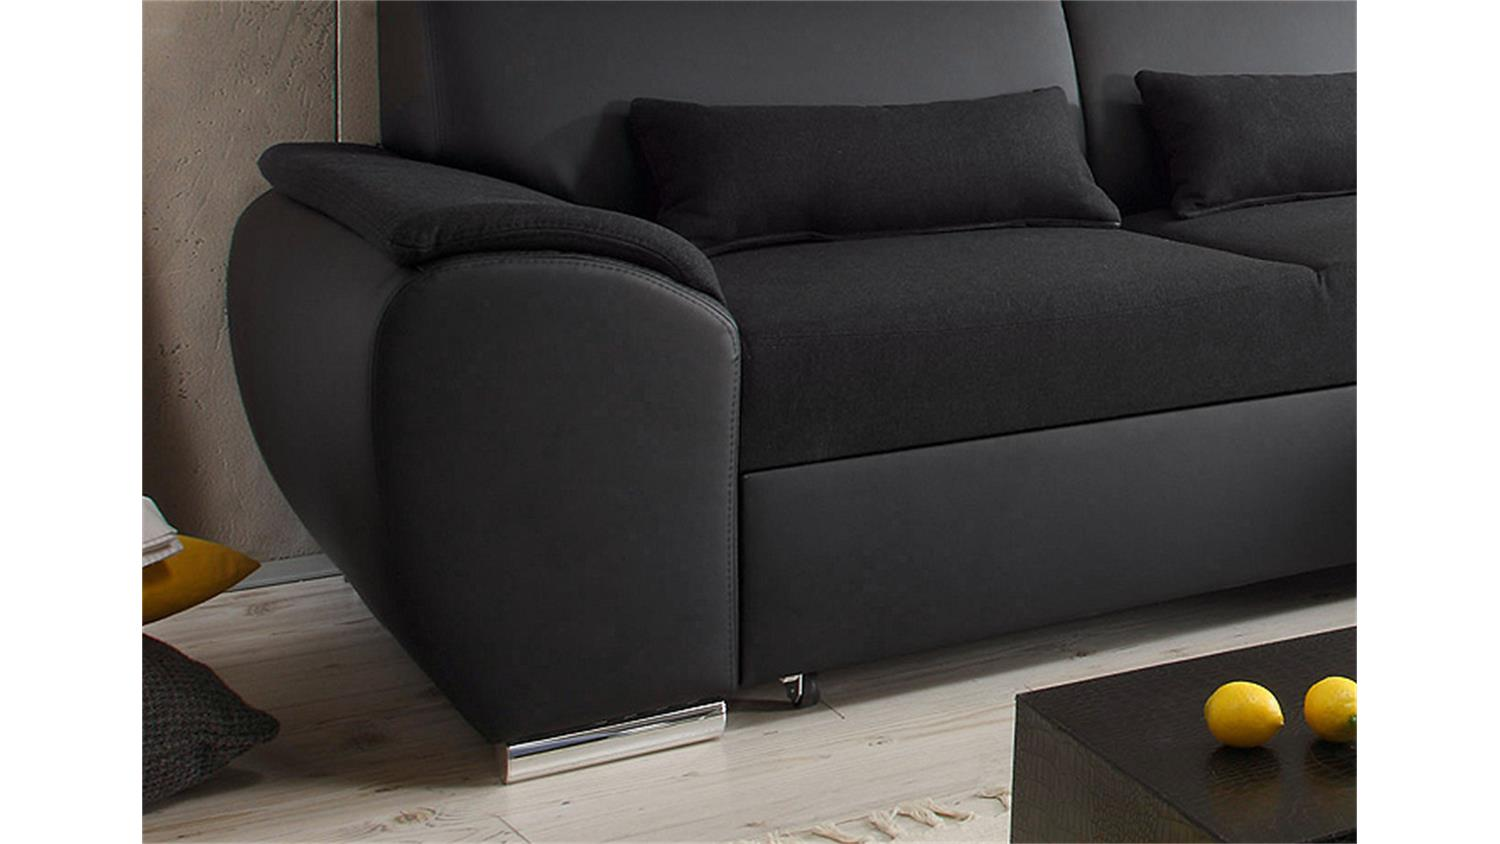 ecksofa antara schwarz schlaffunktion 173 x 277 cm rechts. Black Bedroom Furniture Sets. Home Design Ideas